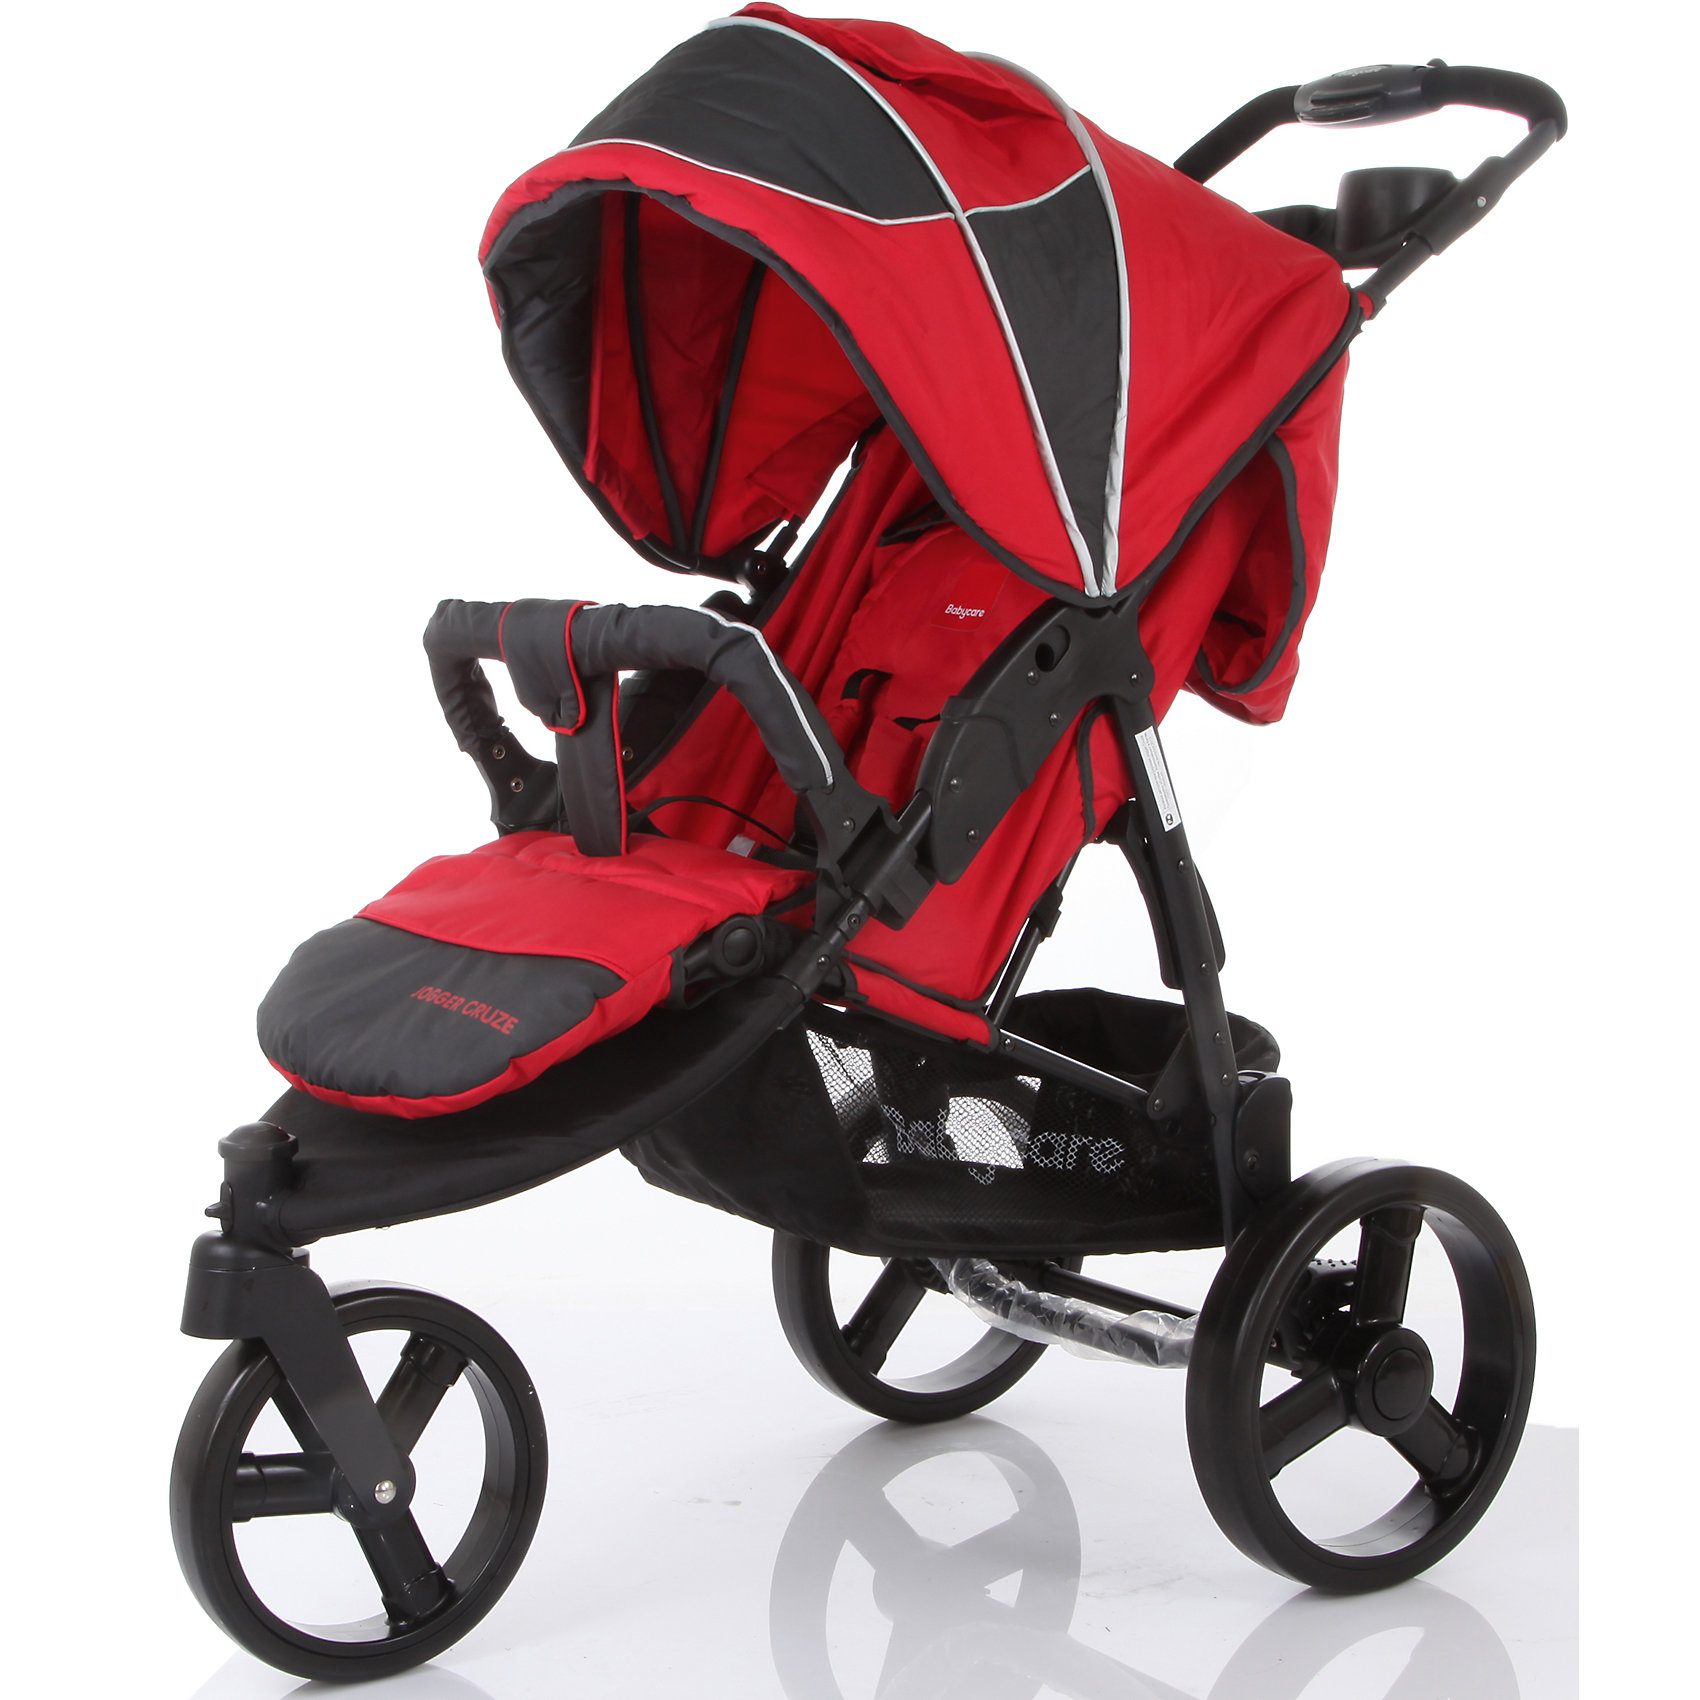 Baby Care Прогулочная коляска Jogger Cruze, Baby Care, красный прогулочная коляска baby care jogger cruze red 17